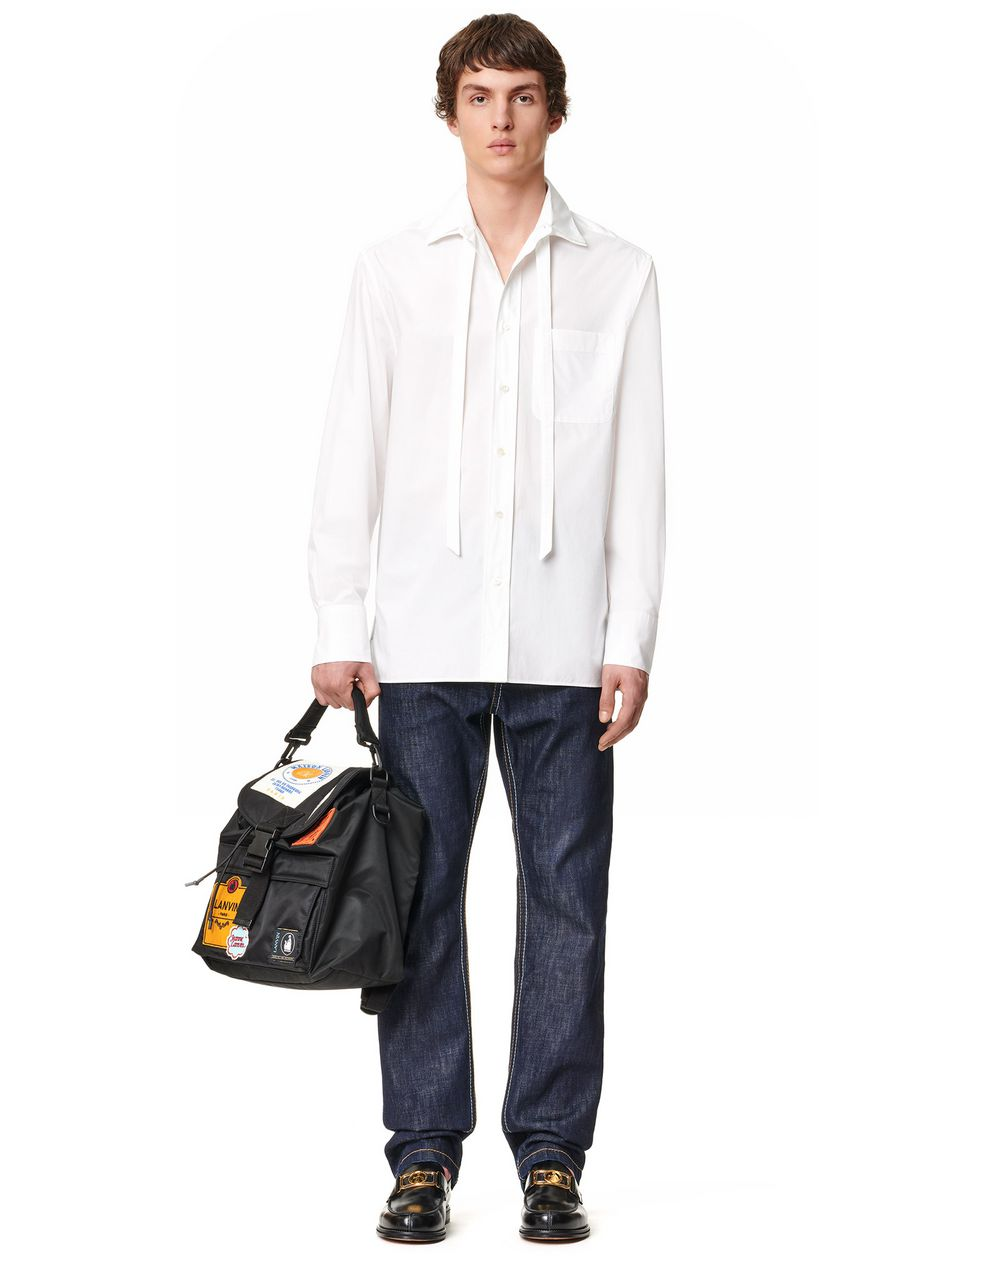 OVERSIZED SHIRT REMOVABLE COLLAR - Lanvin